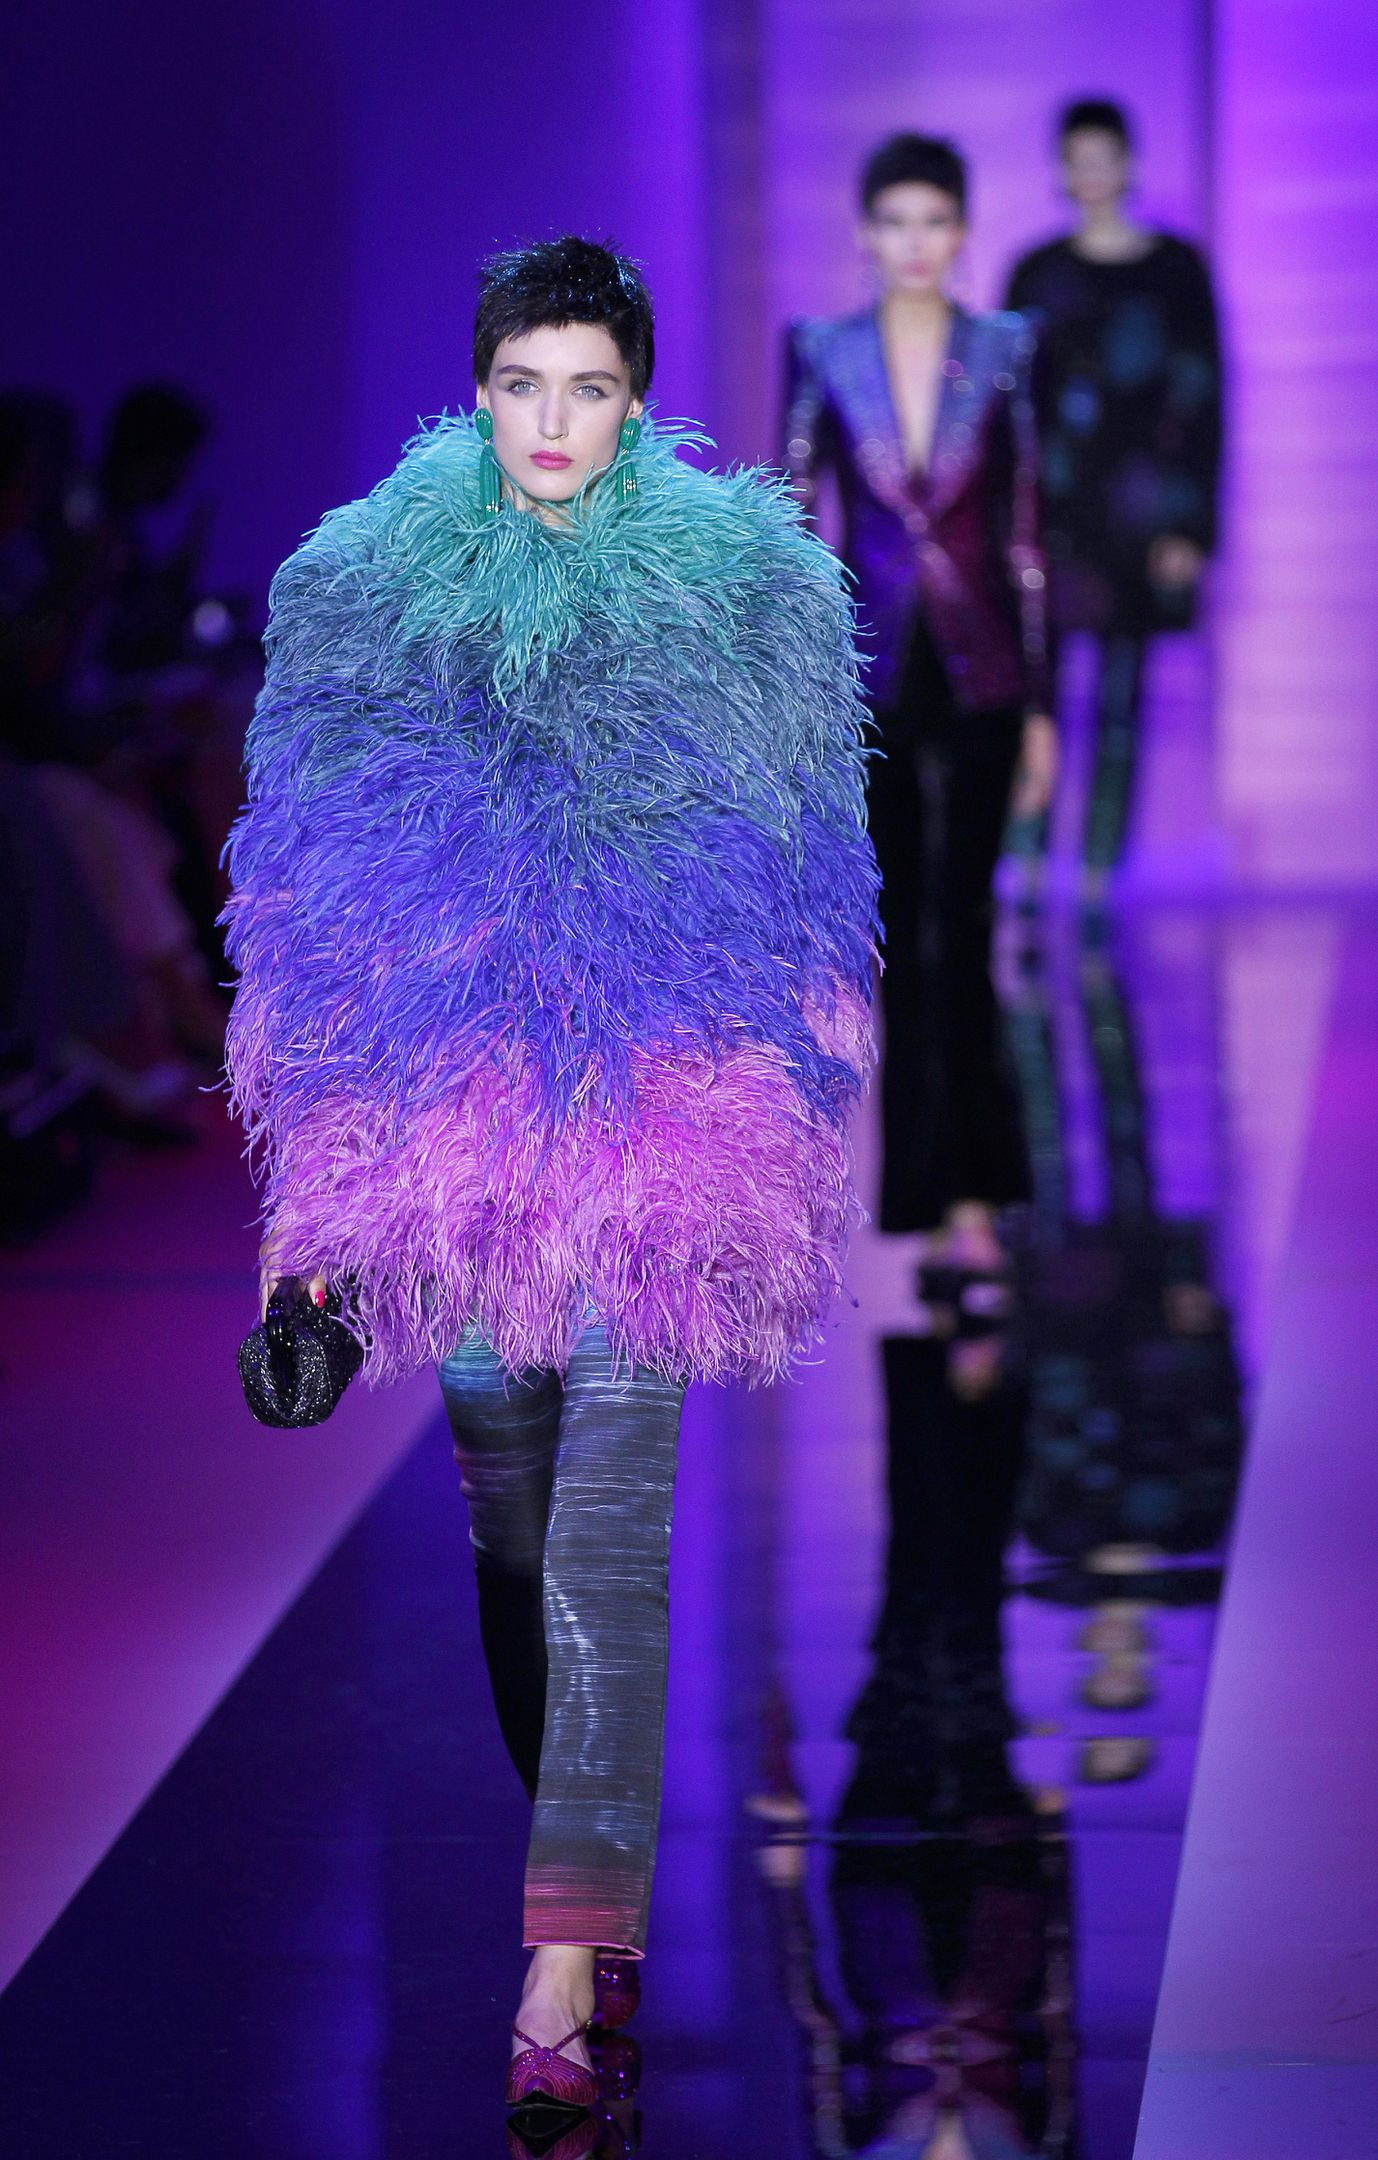 Feathers, sequins and 80s glam ruled at Armani Privé.